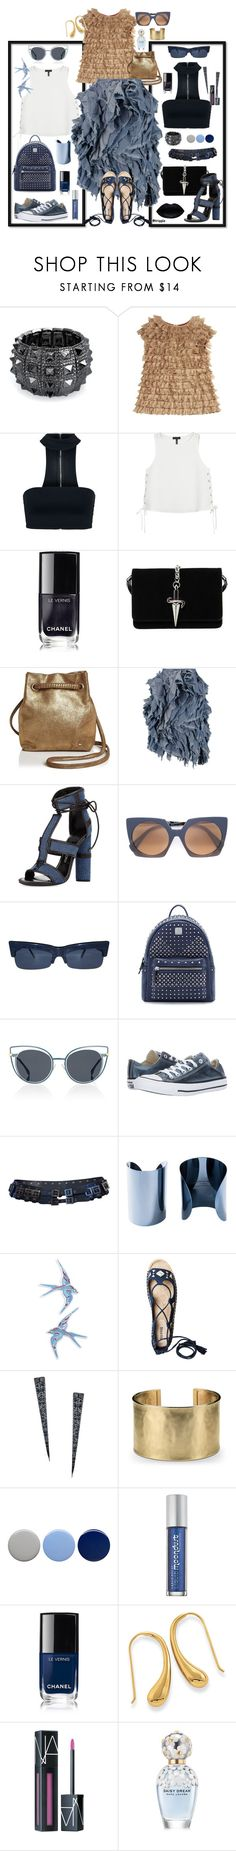 """passe-partout"" by striggla ❤ liked on Polyvore featuring Bling Jewelry, Pringle of Scotland, WithChic, rag & bone, Chanel, Cesare Paciotti, Halston Heritage, Marques'Almeida, Tom Ford and Yohji Yamamoto"